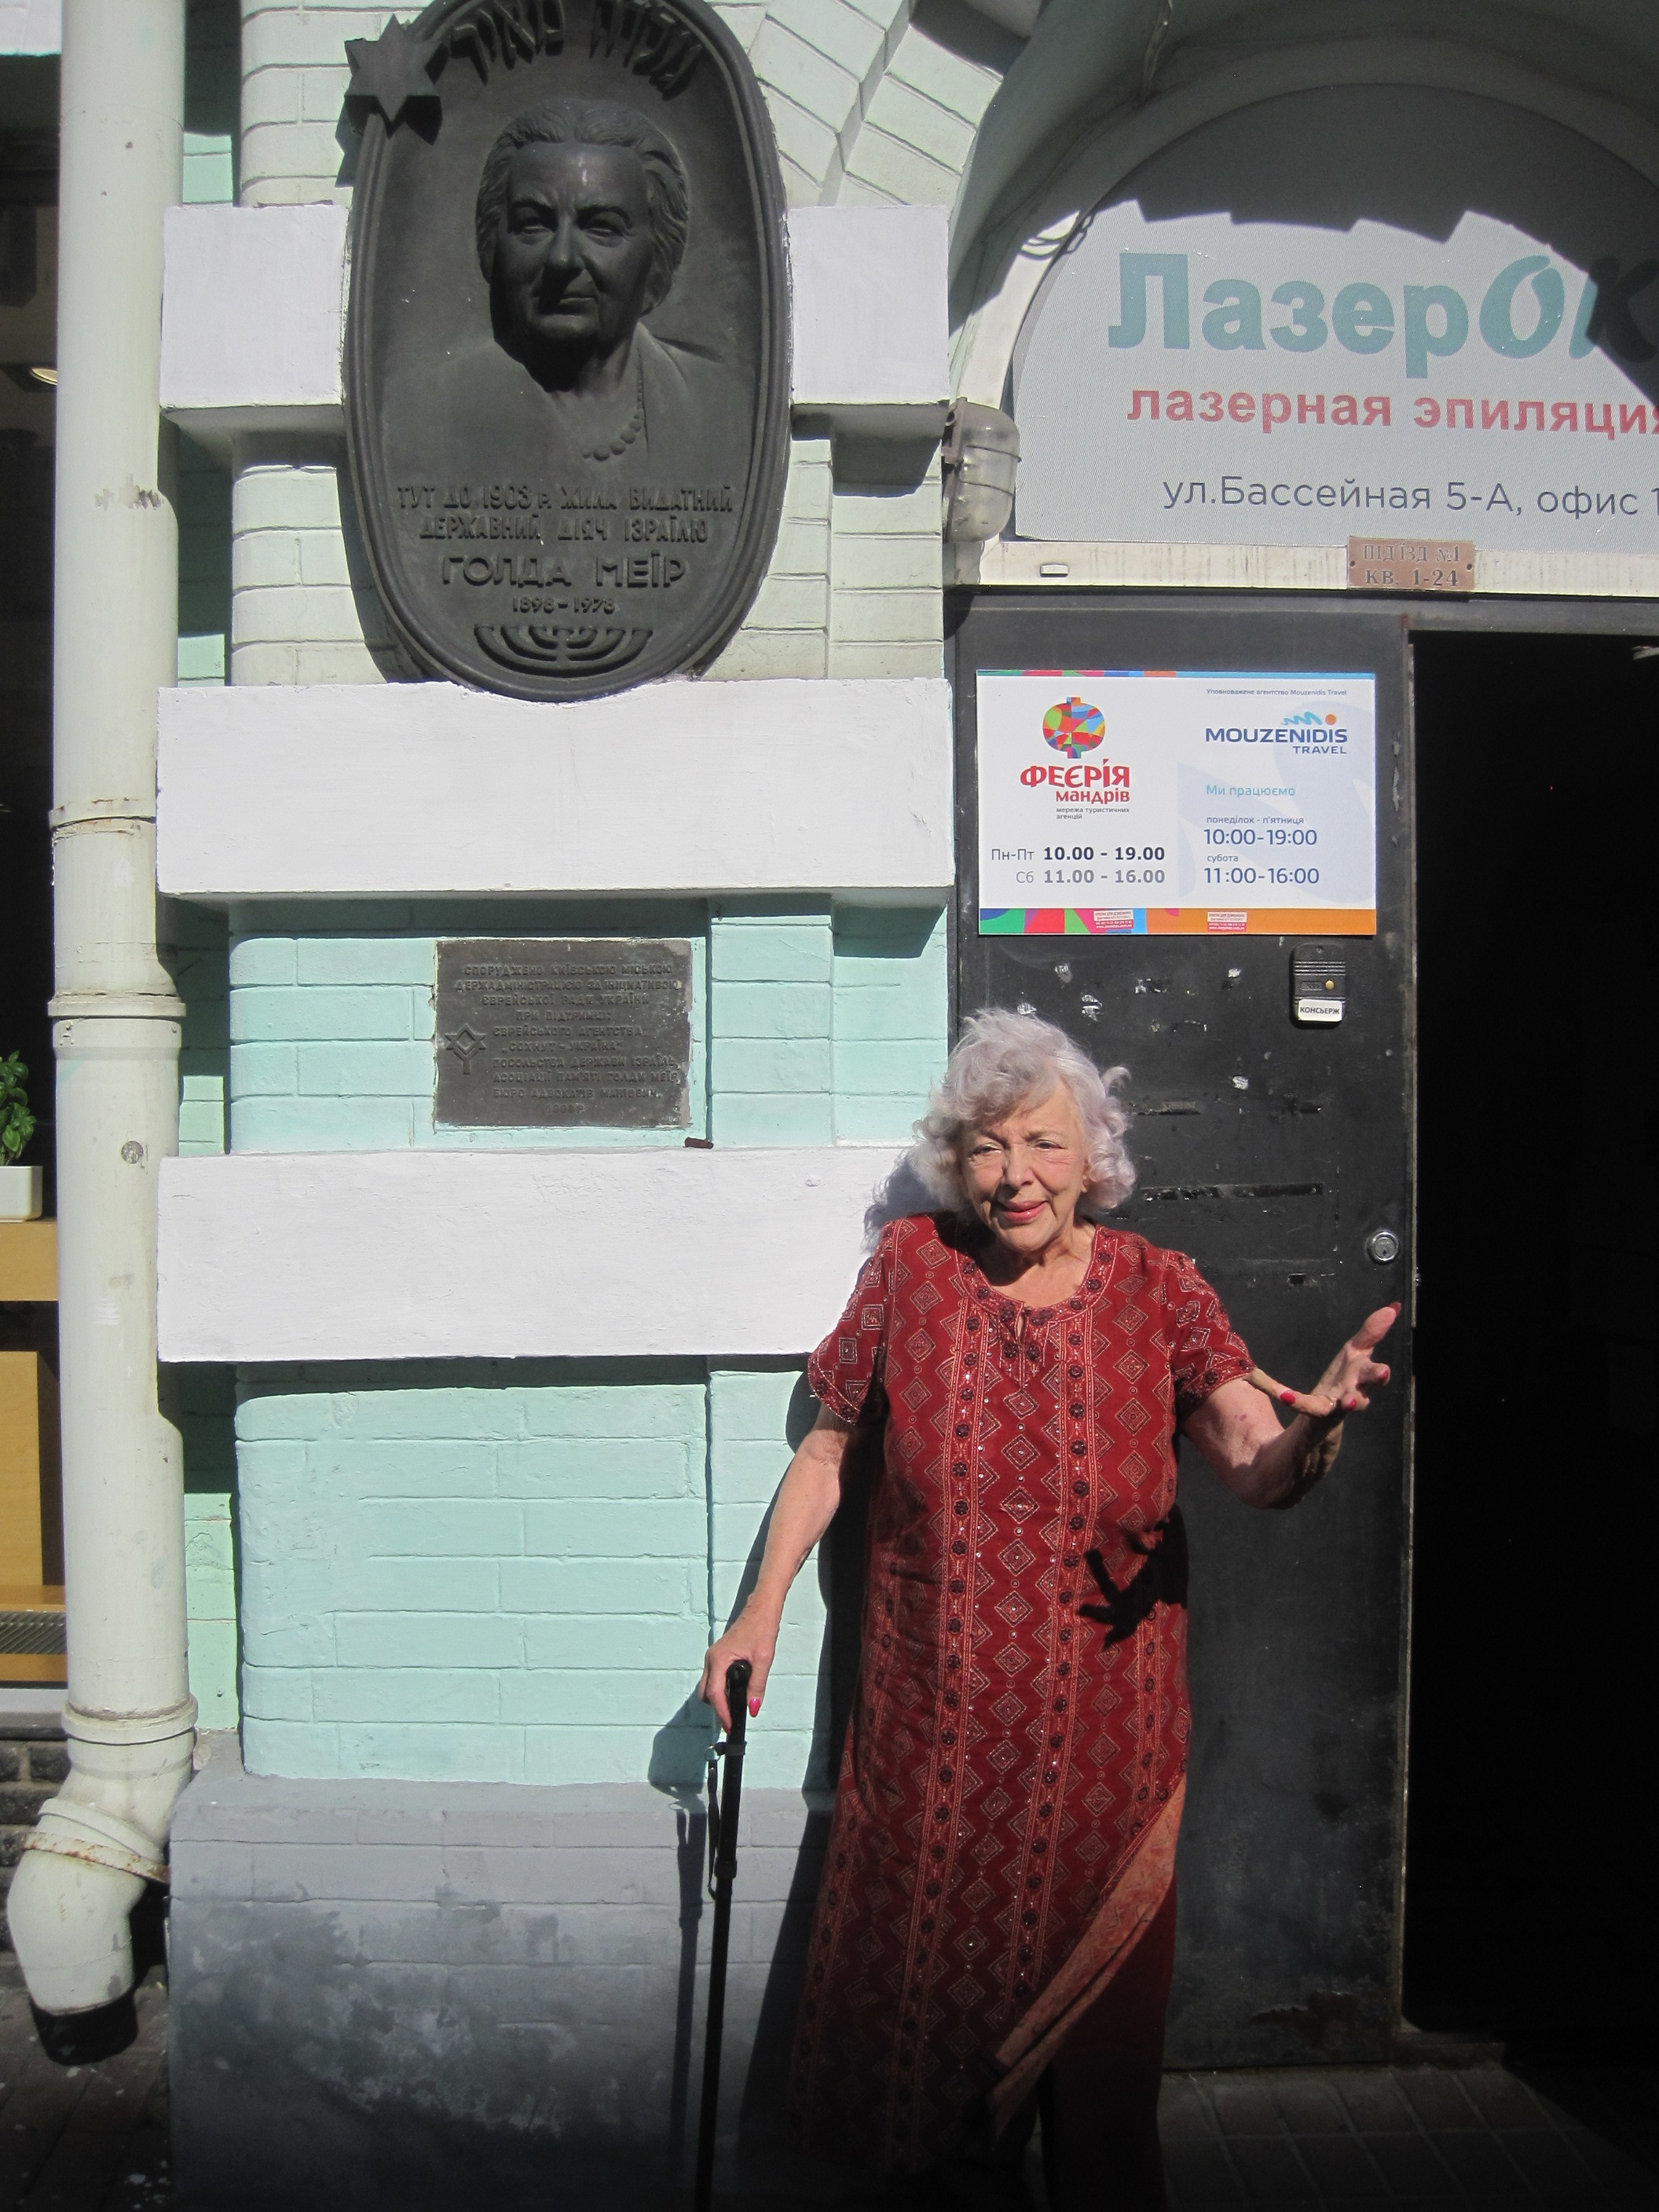 Reciting a speech from MOMMA GOLDA under the plaque